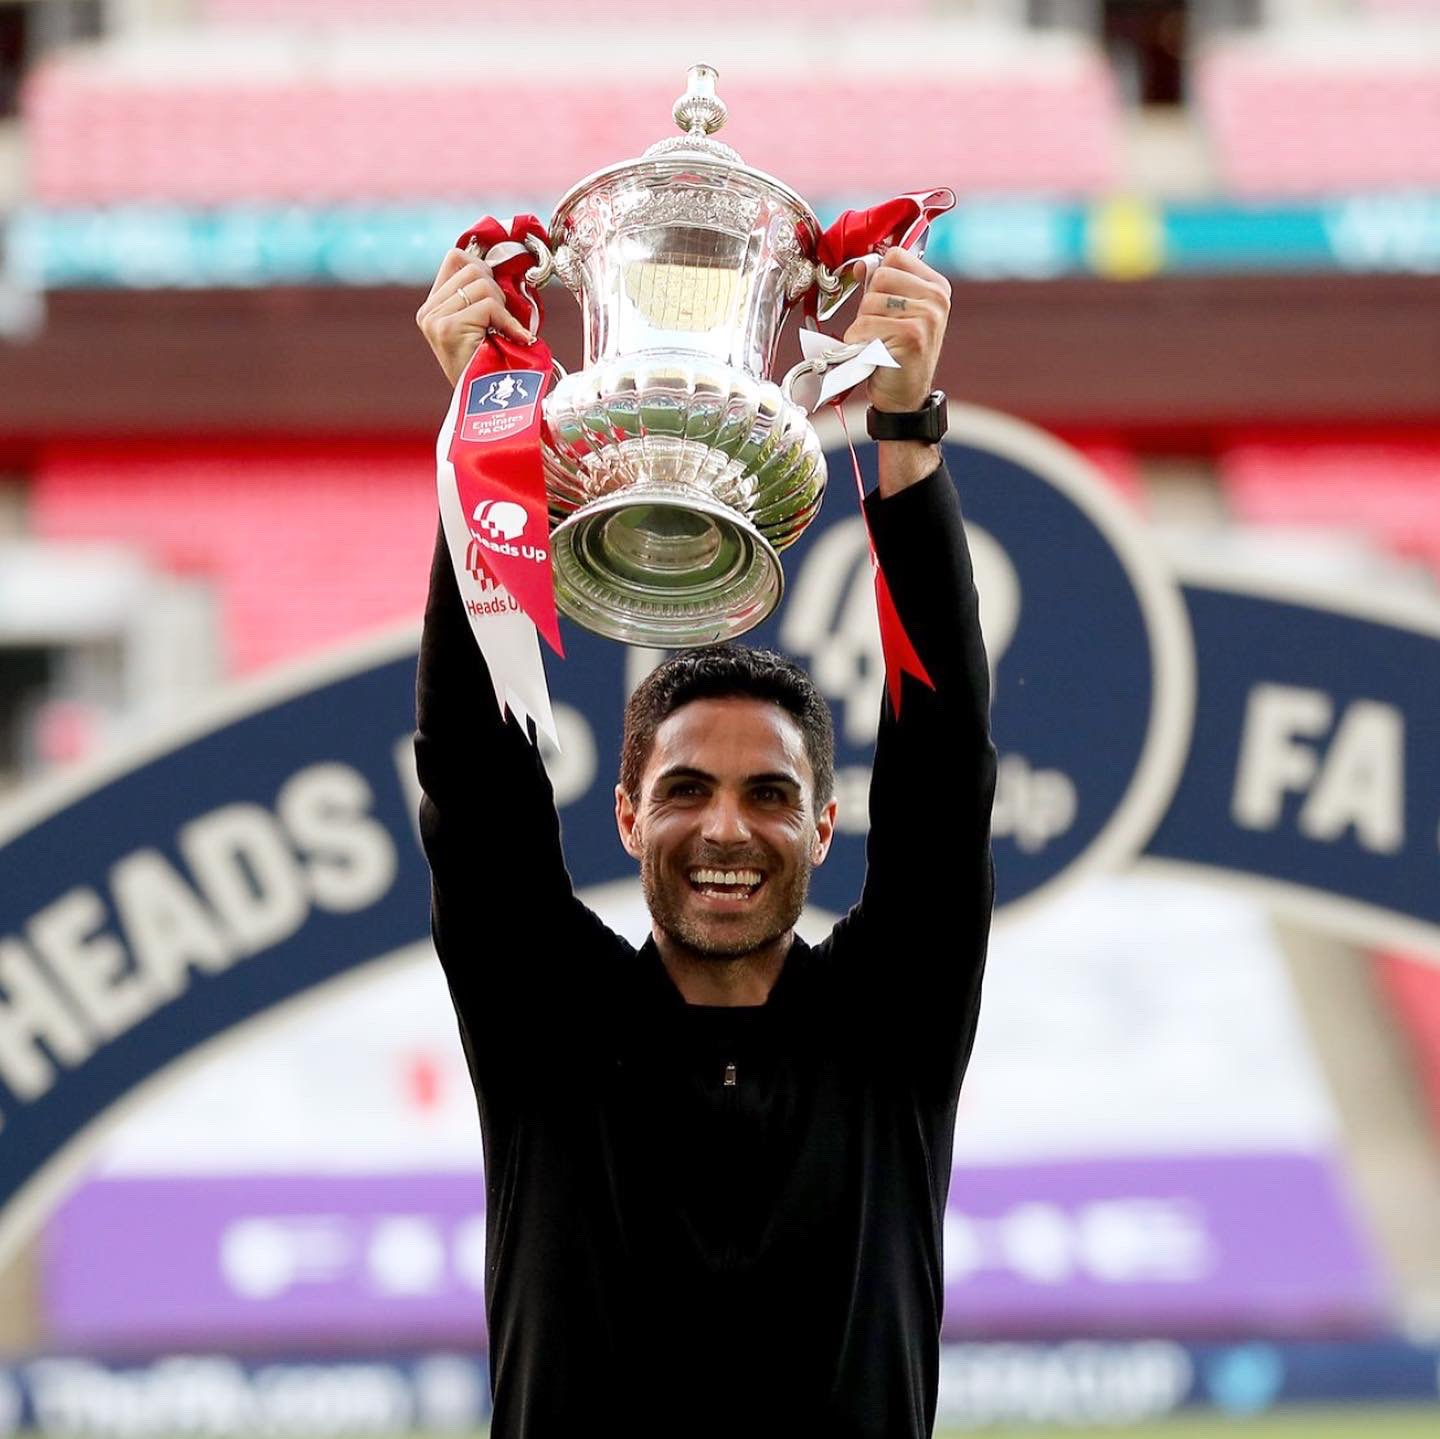 Arteta Aims To Win Arsenal's 14th EPL Title With Spirit Of 14th FA Cup Success